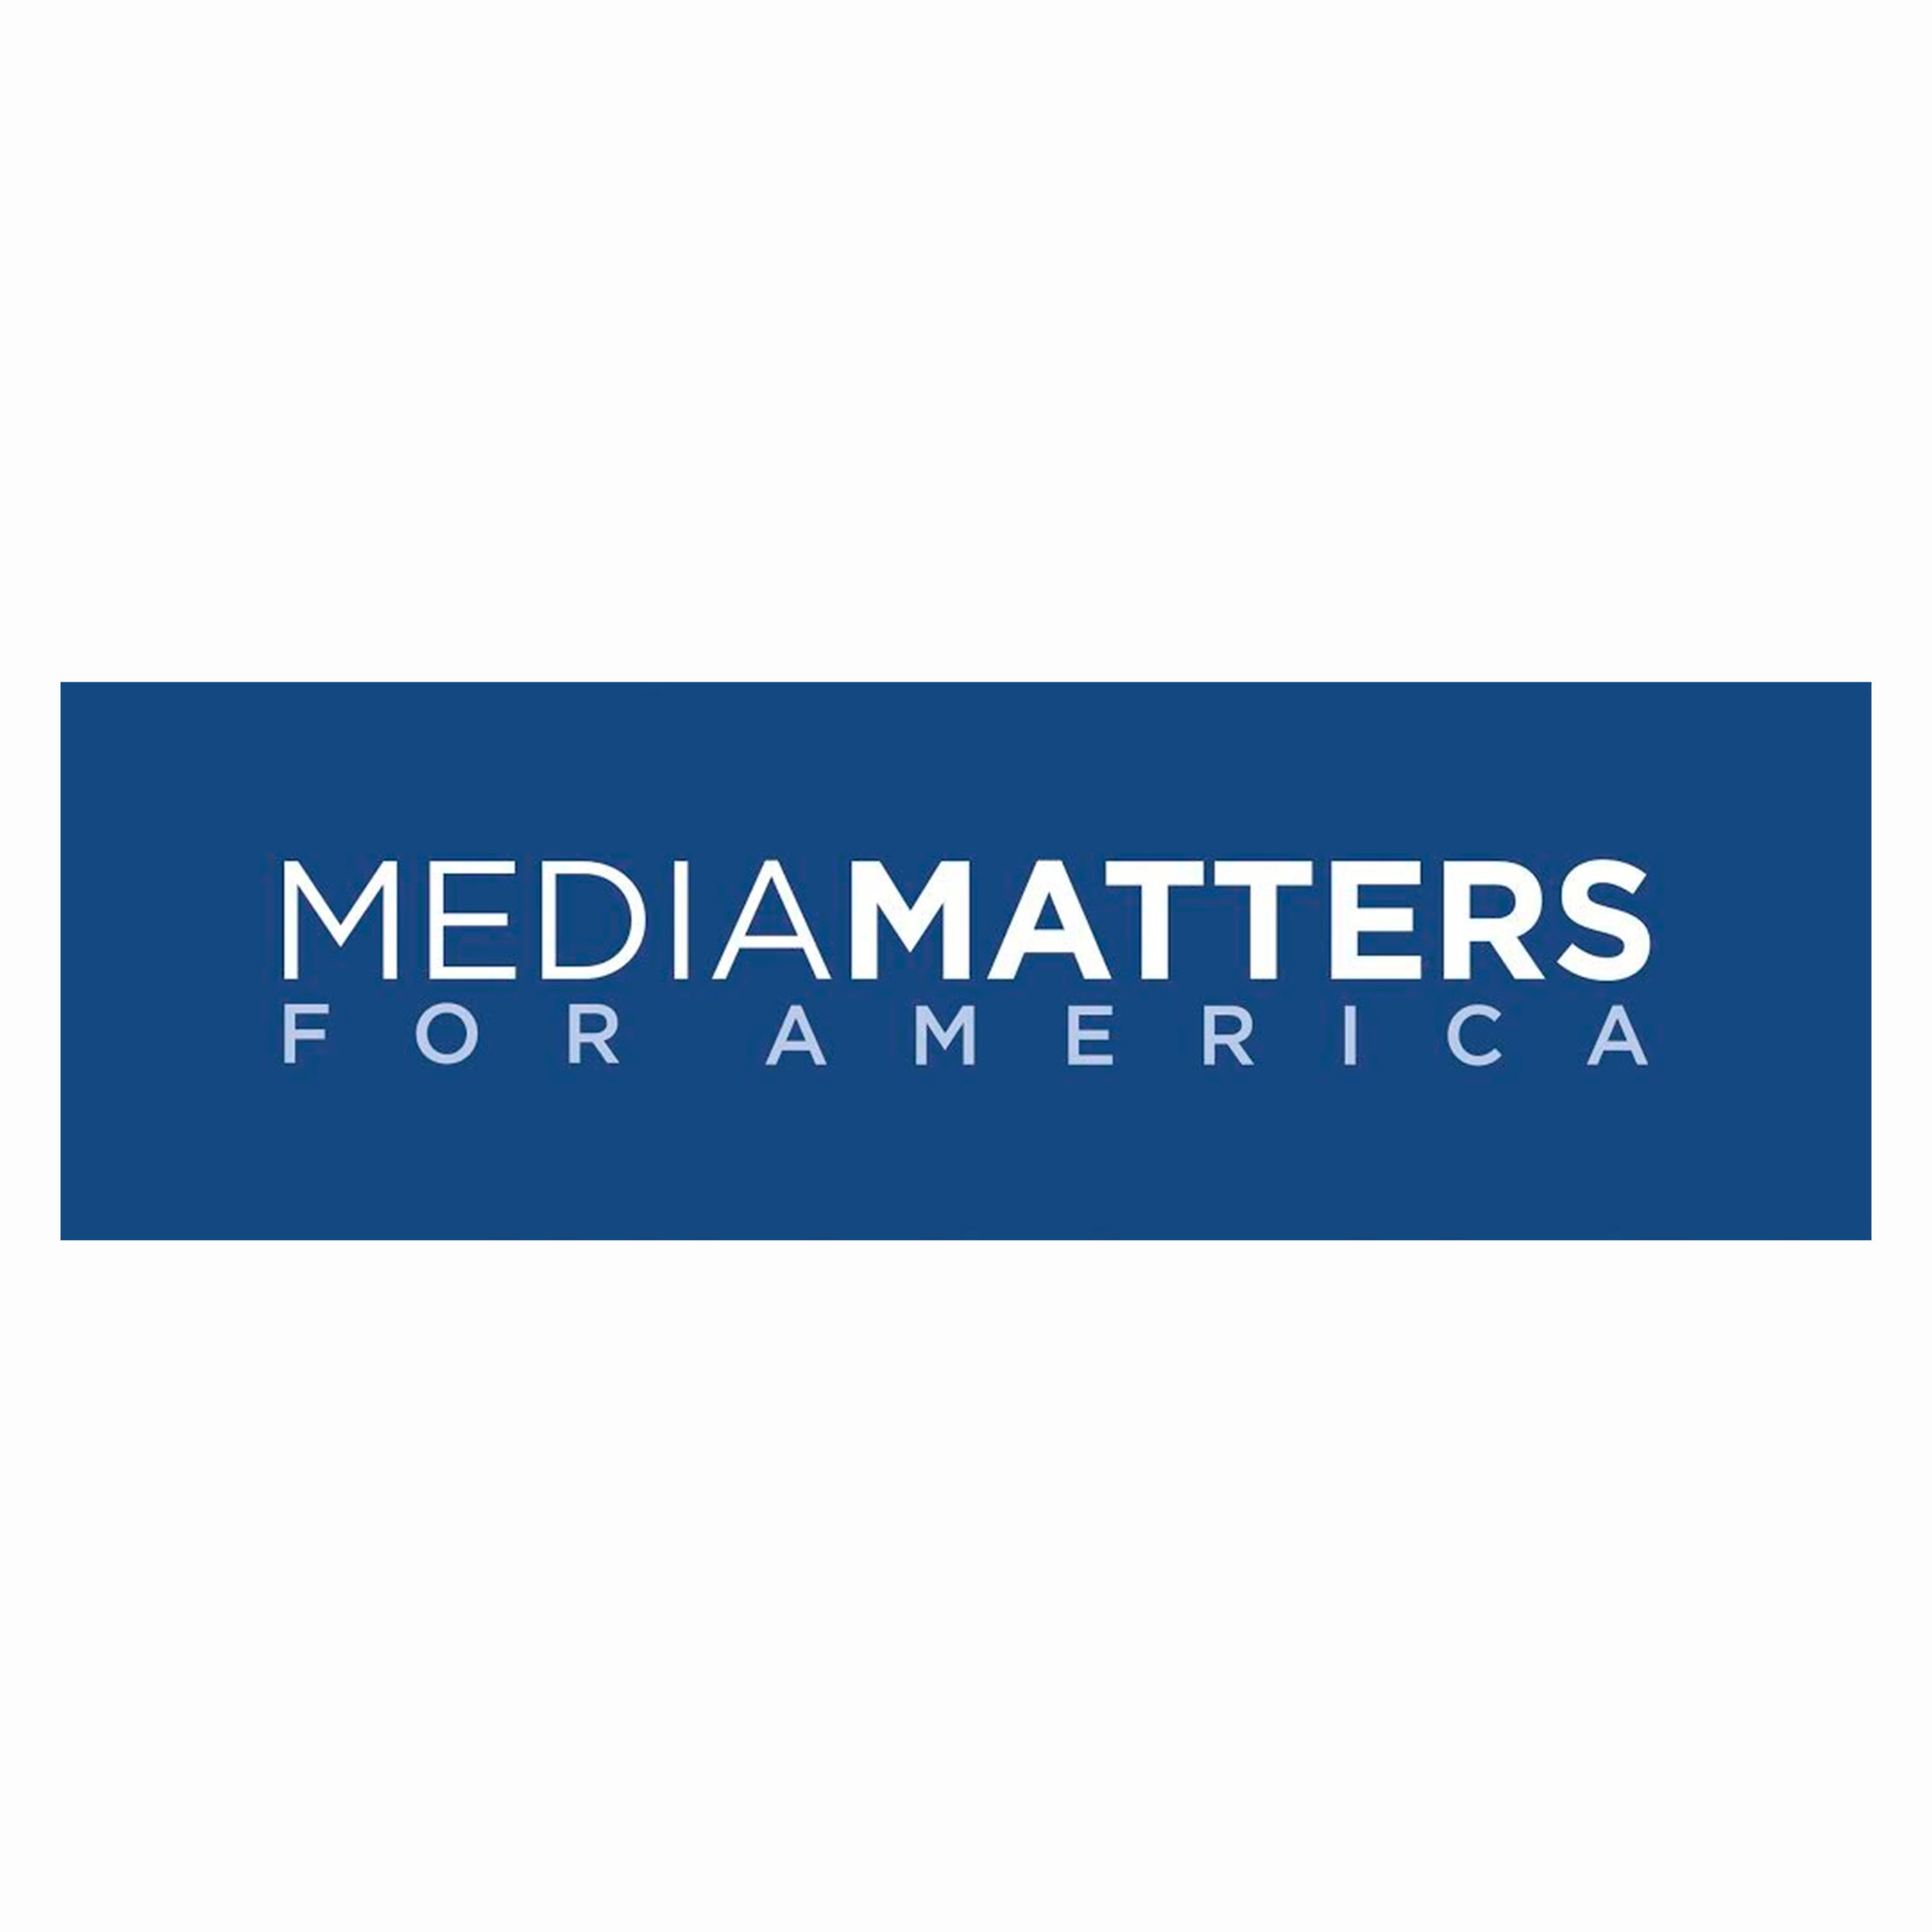 MediaMatters_background.jpg